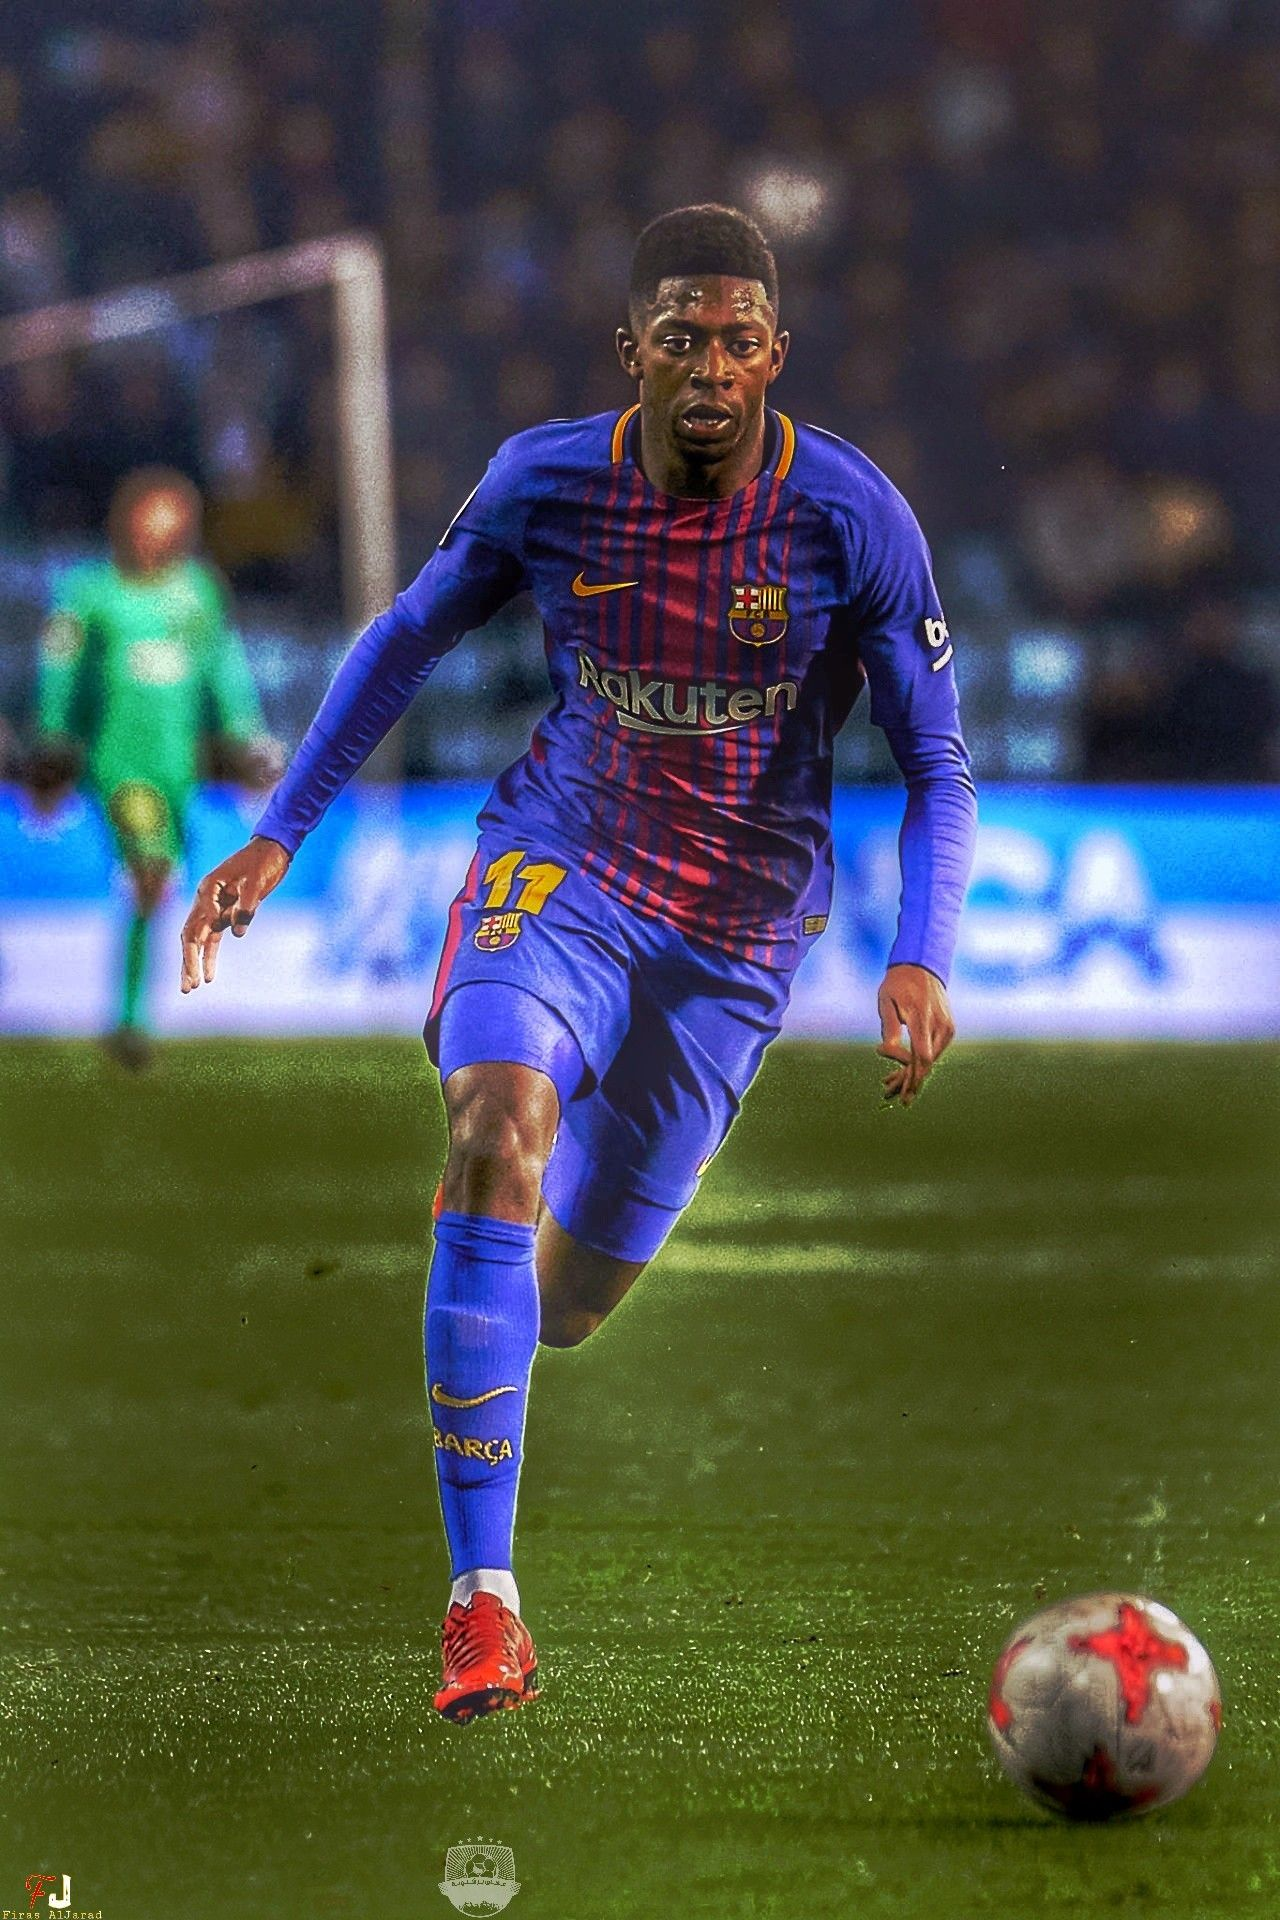 WallpaperFootball Othman TeamFc Y Barcelona Dembélé 8wXnOP0k